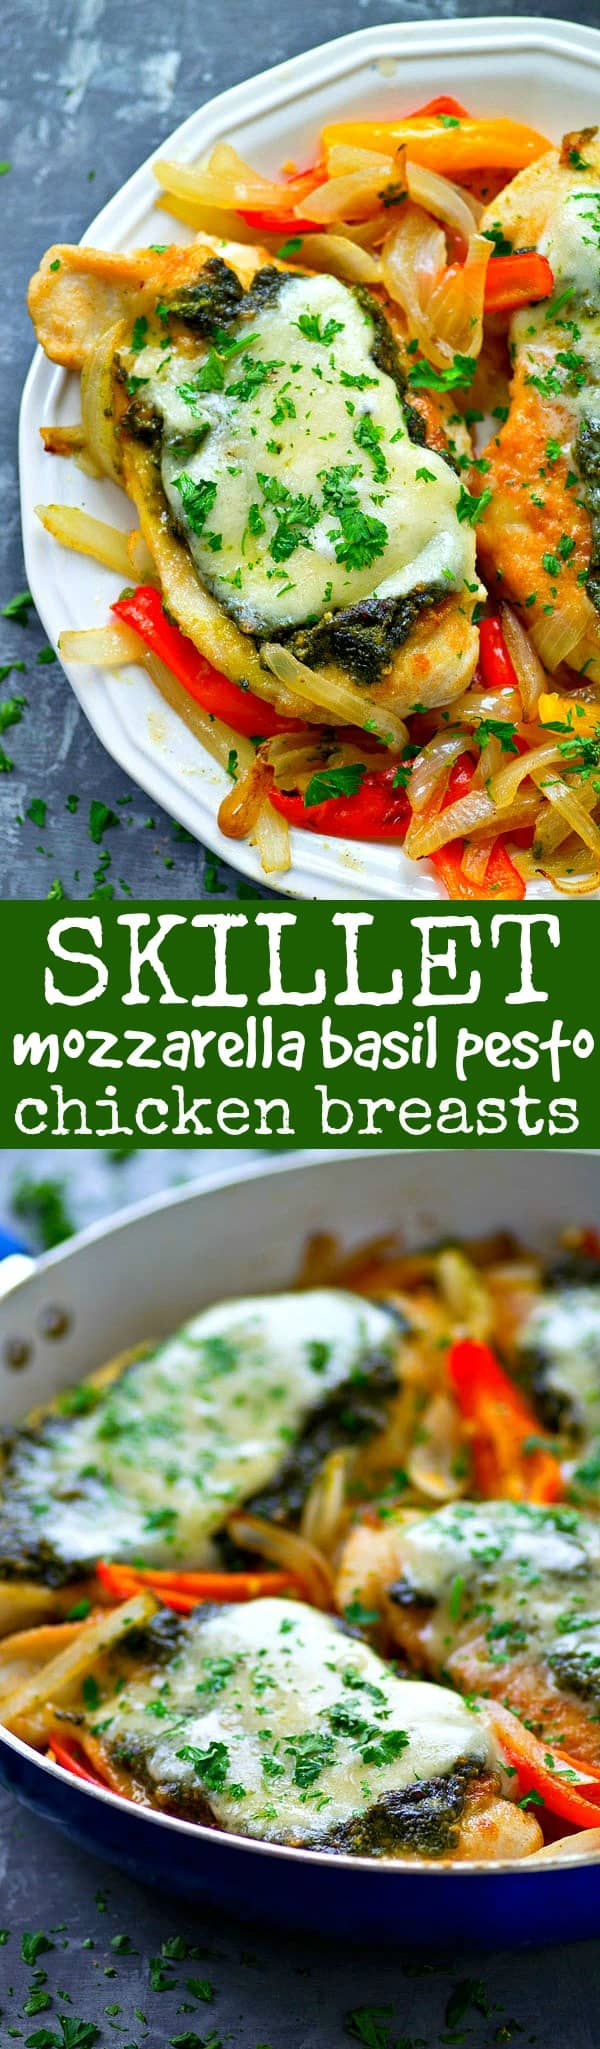 Pan-seared basil pesto chicken breasts get topped with a homemade basil pesto and lots of mozzarella cheese for an easy skillet chicken dinner ready in under 30 minutes!